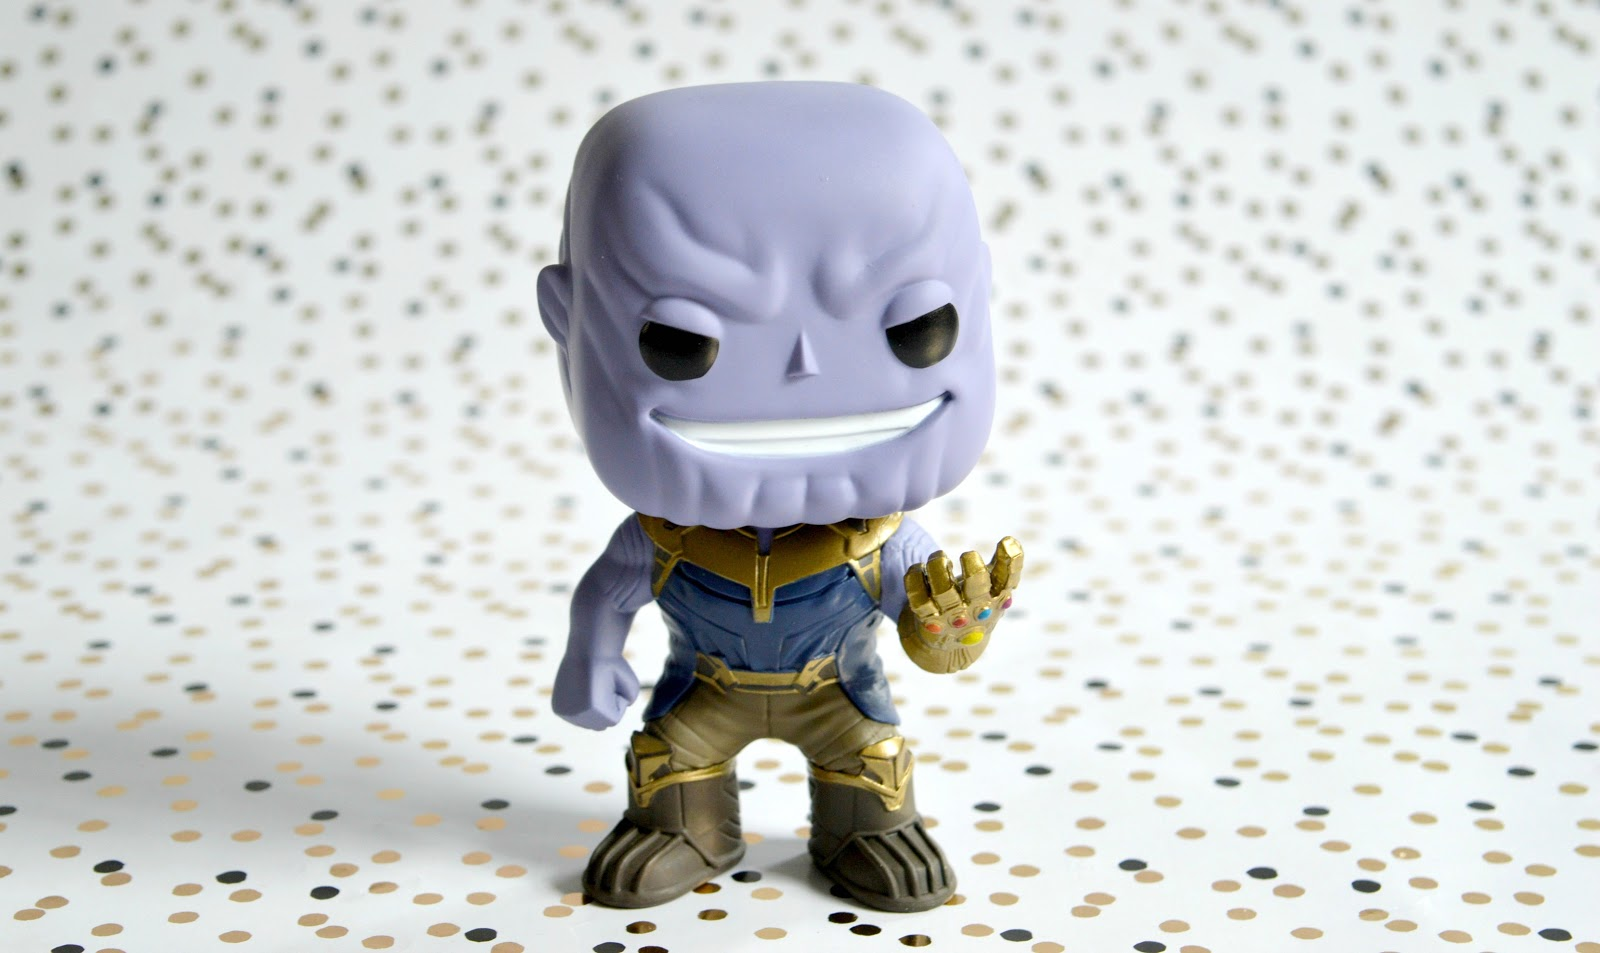 Infinity War Thanos Funko POP! Figure